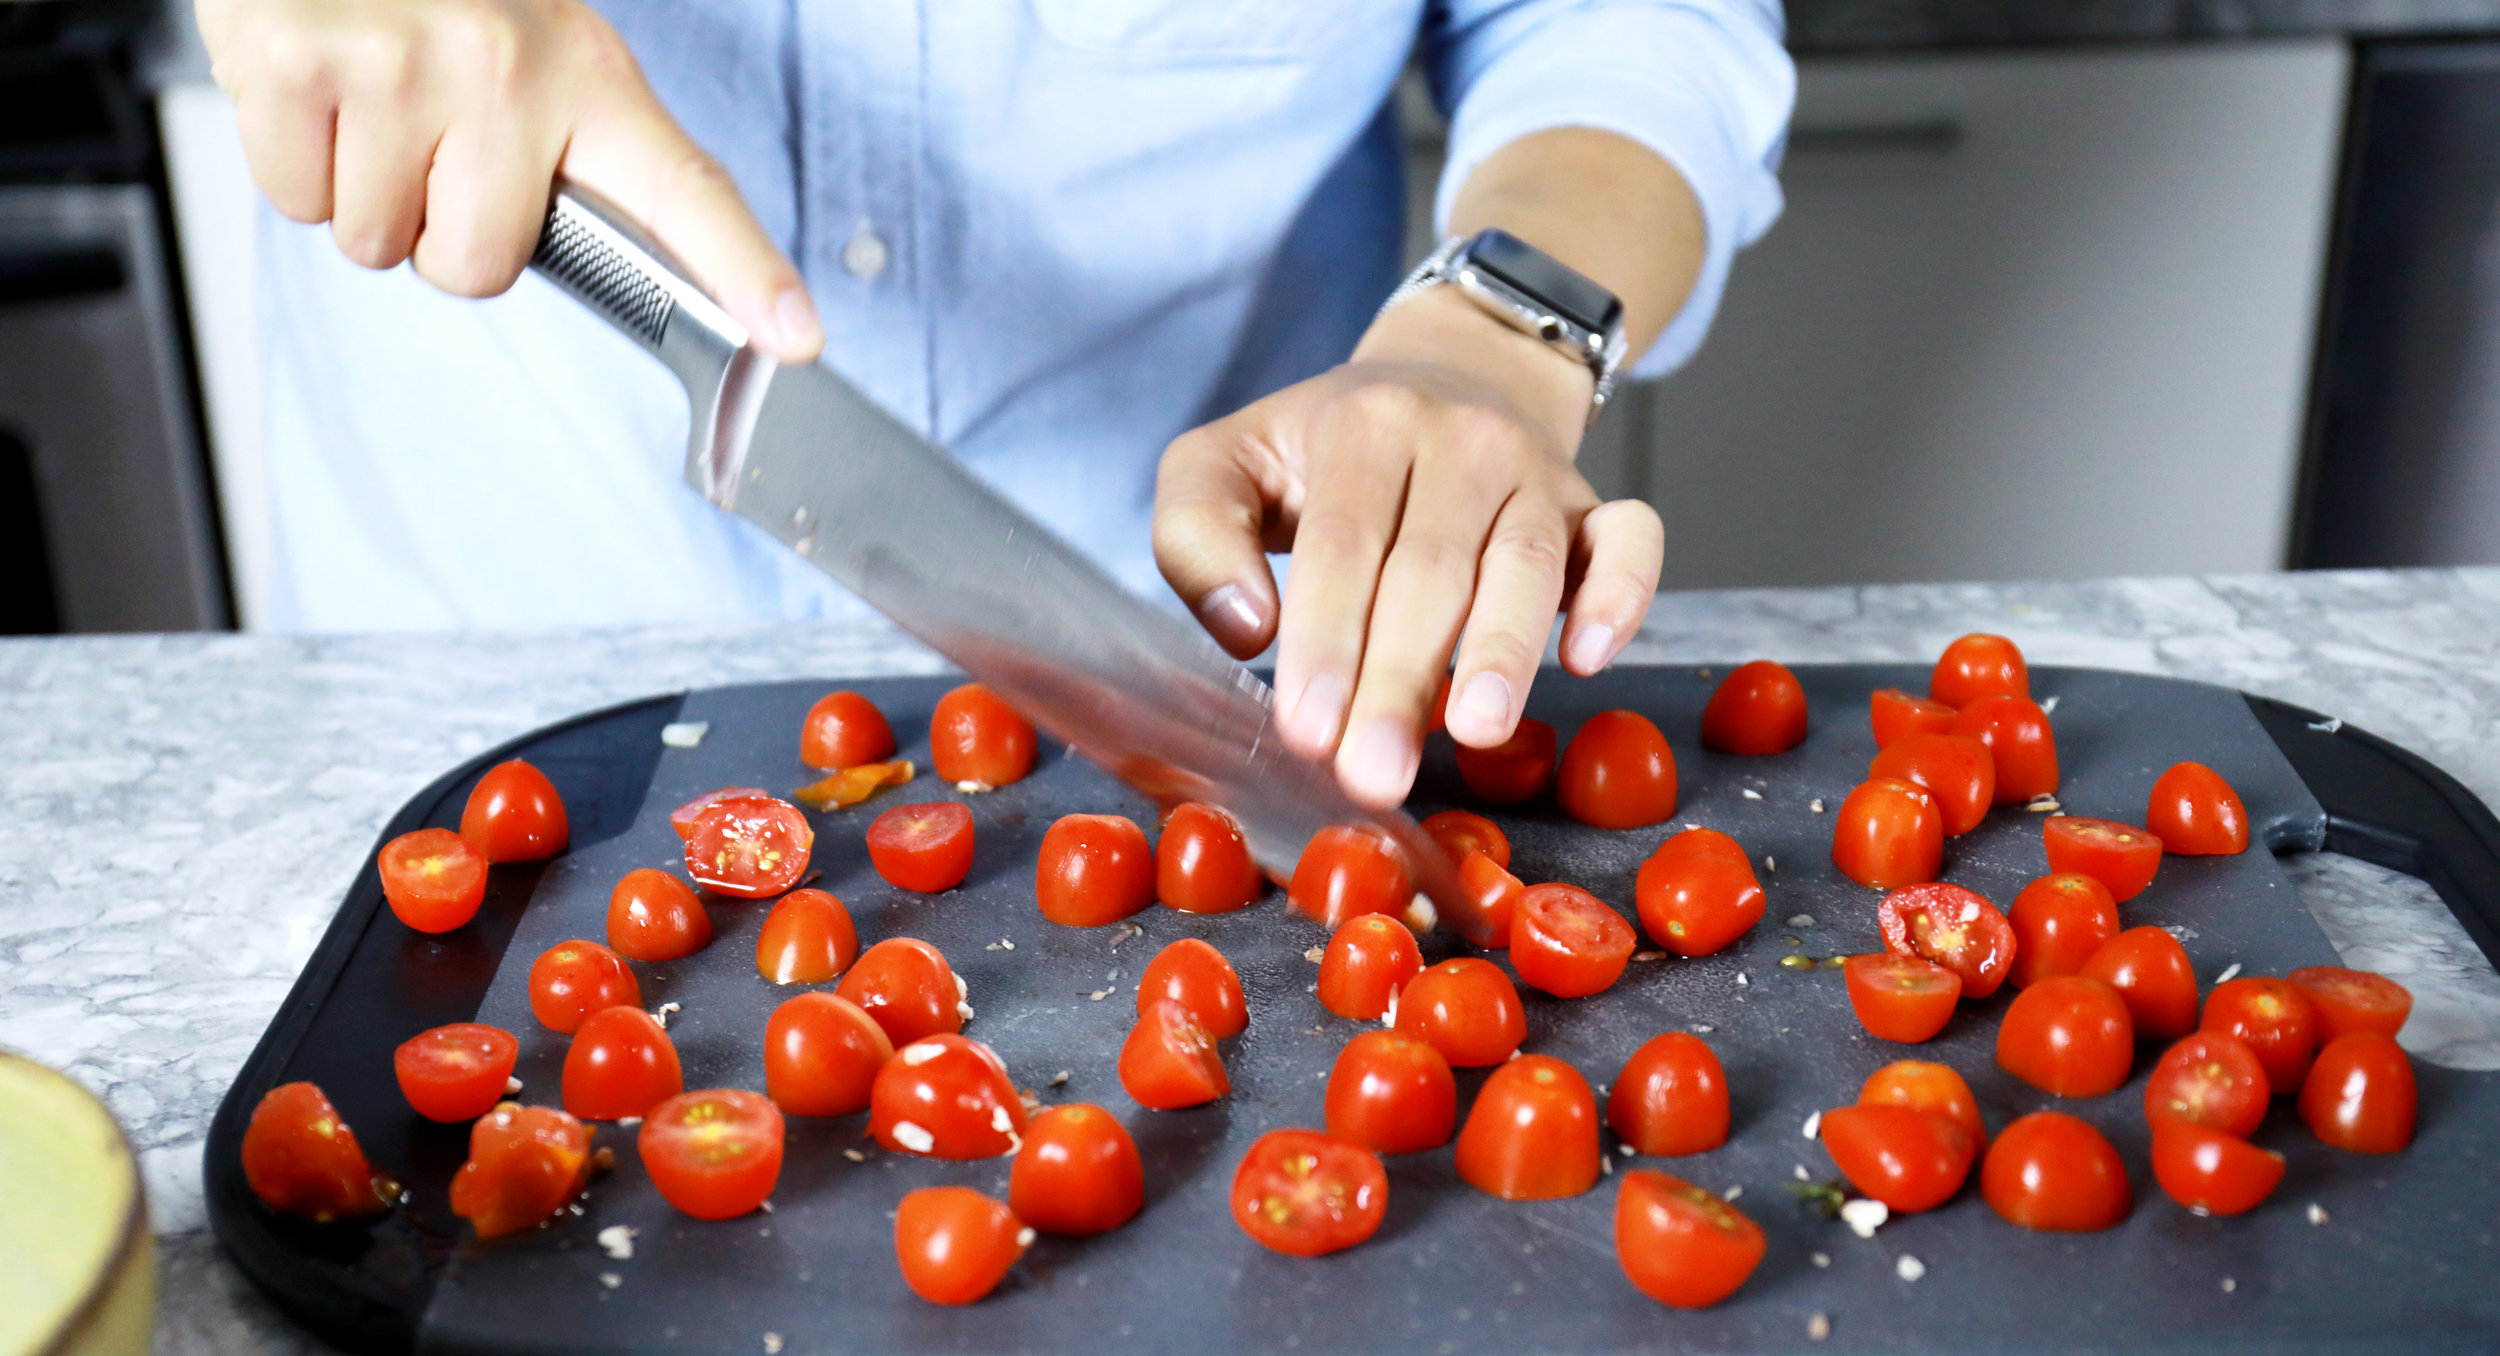 Look at all the tomatoes we made Sean cut up!